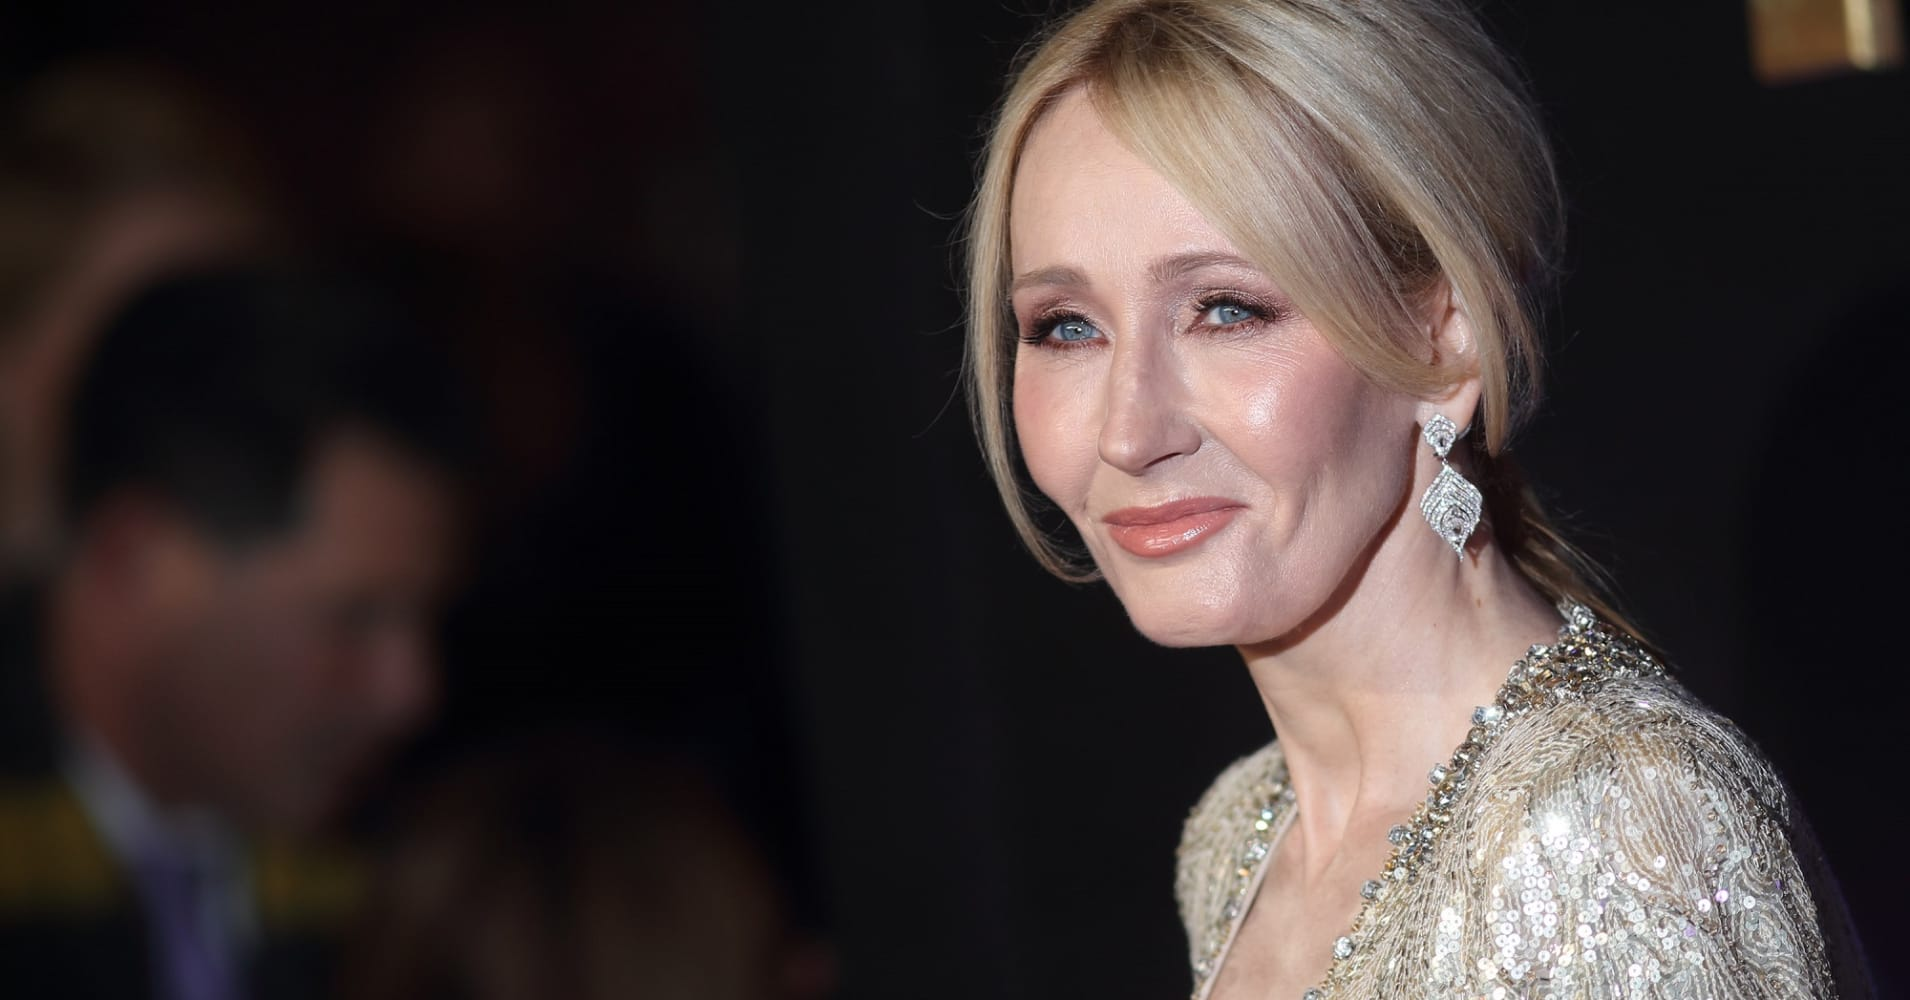 J.K. Rowling attends the European premiere of 'Fantastic Beasts And Where To Find Them' at Odeon Leicester Square on November 15, 2016 in London, England.